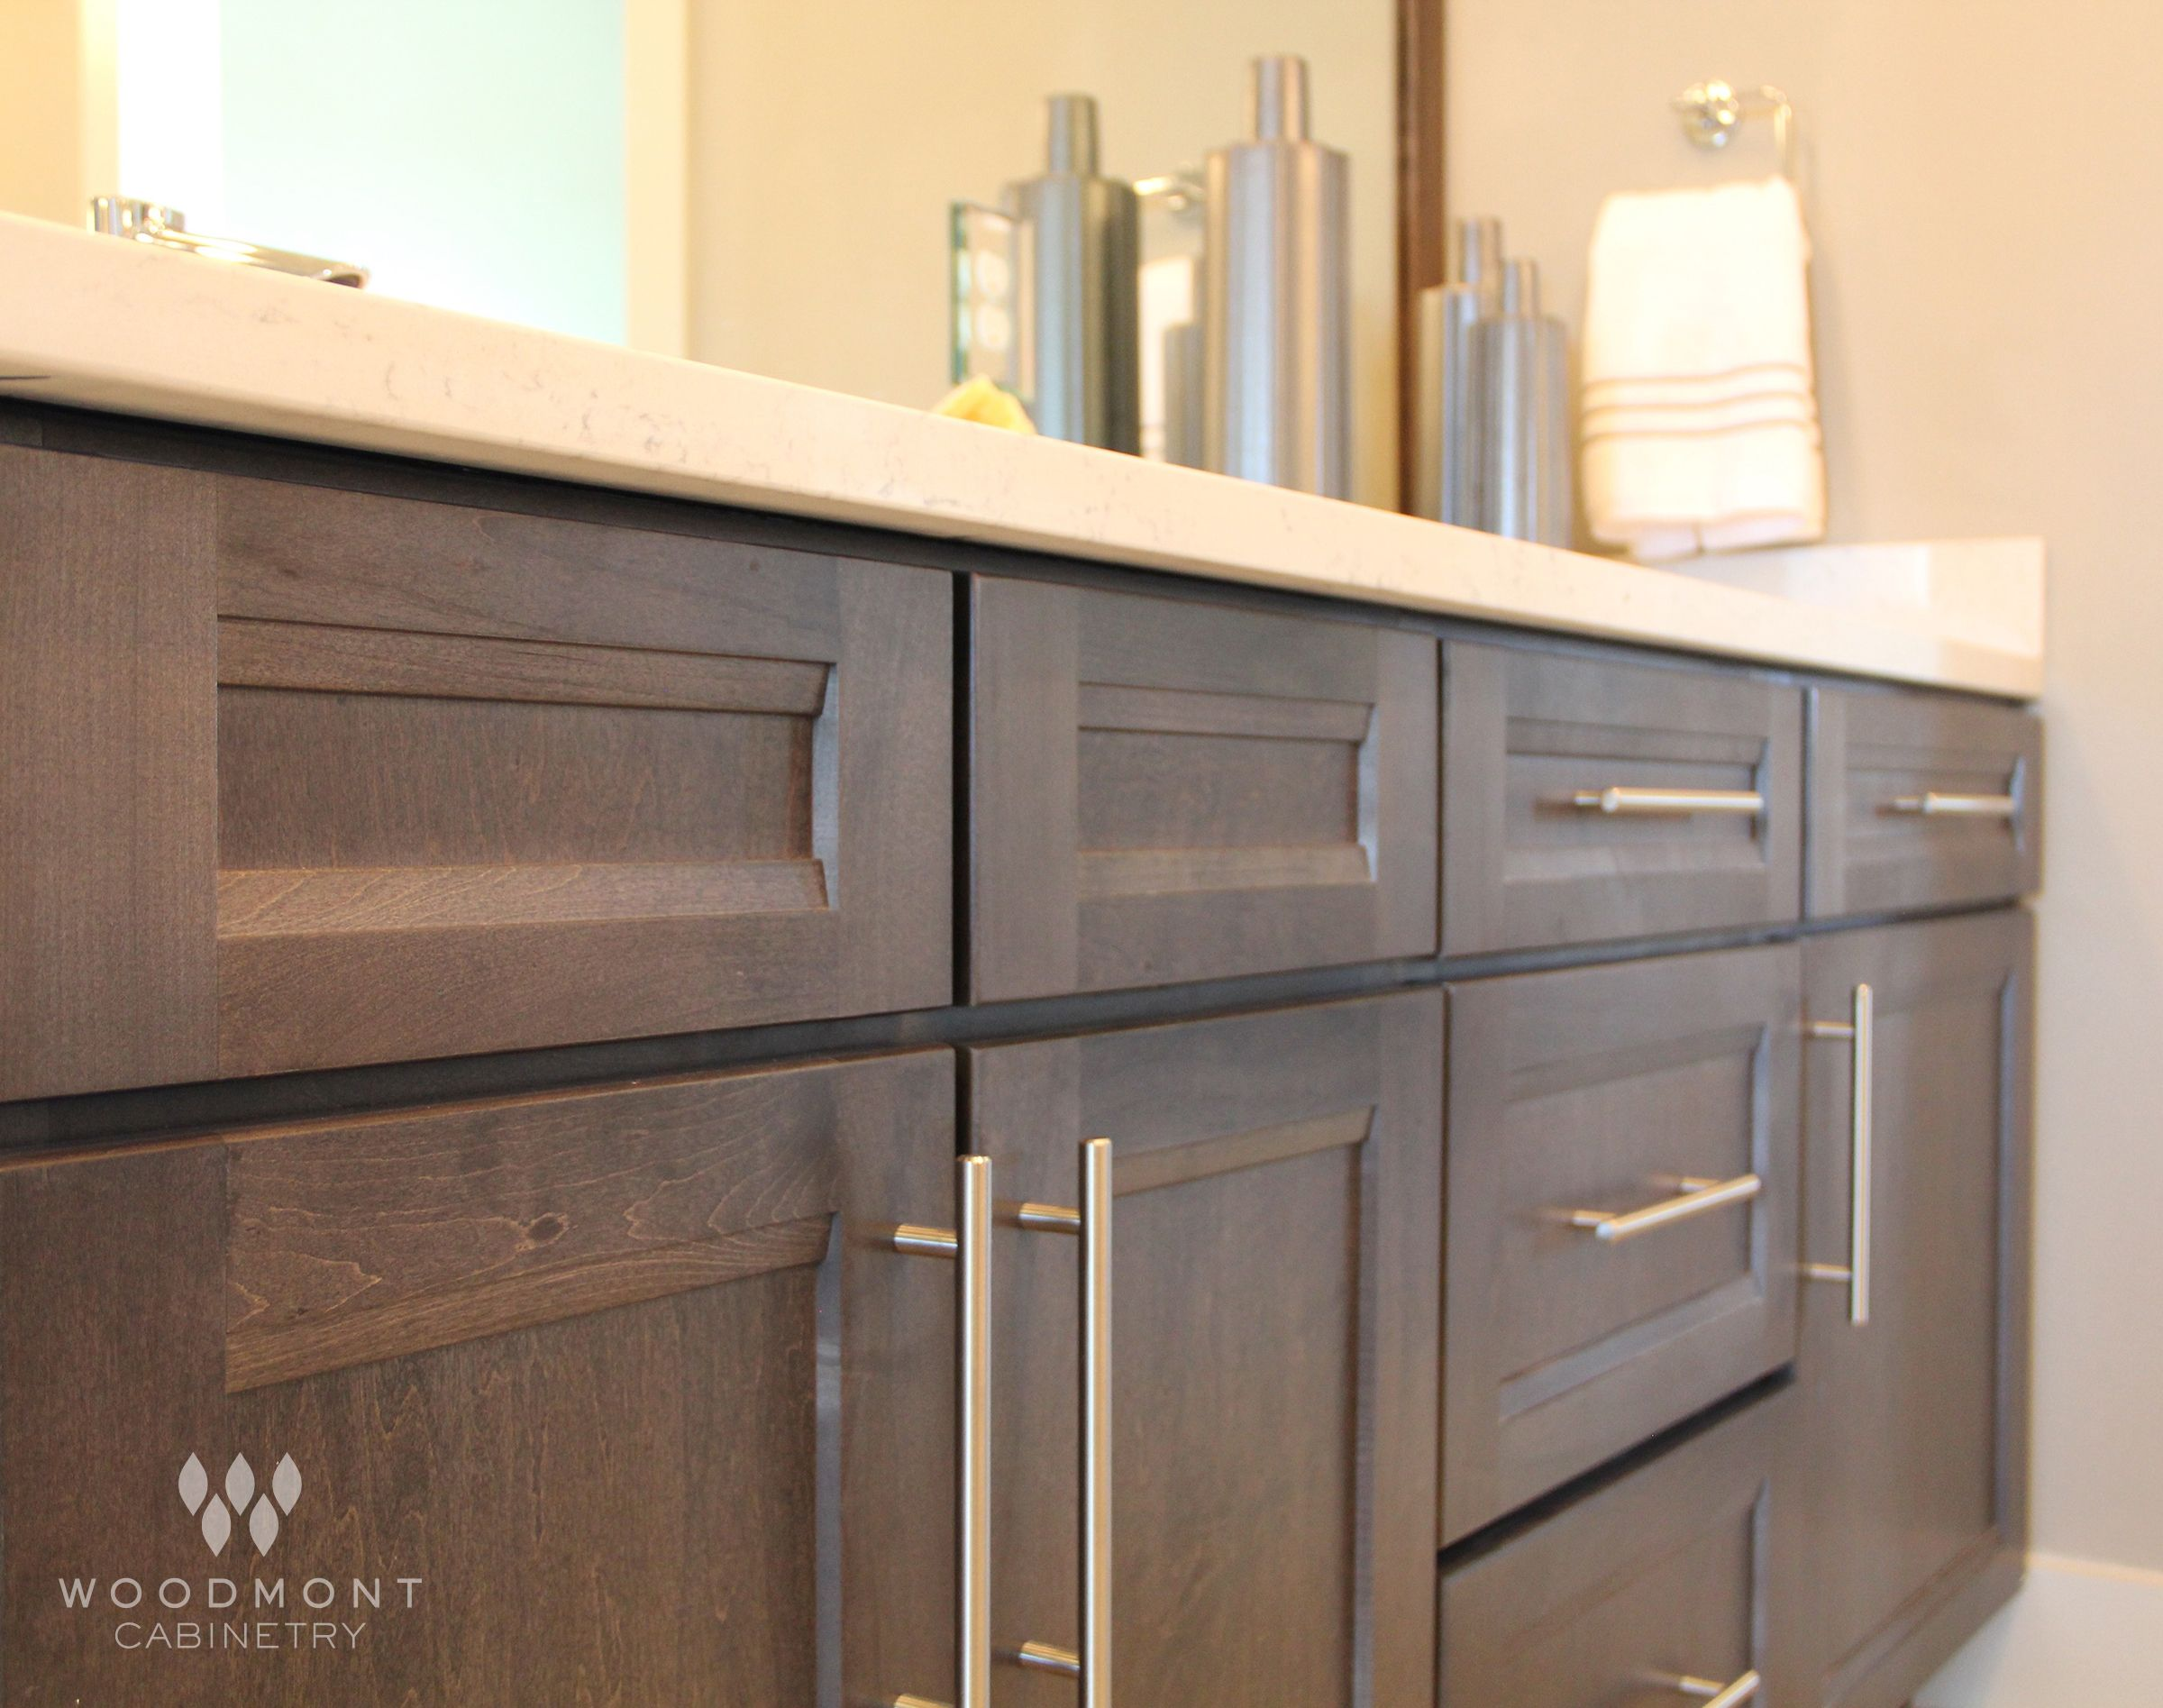 Beautiful Bathroom Cabinets By Woodmont Cabinetry Sedona Maple